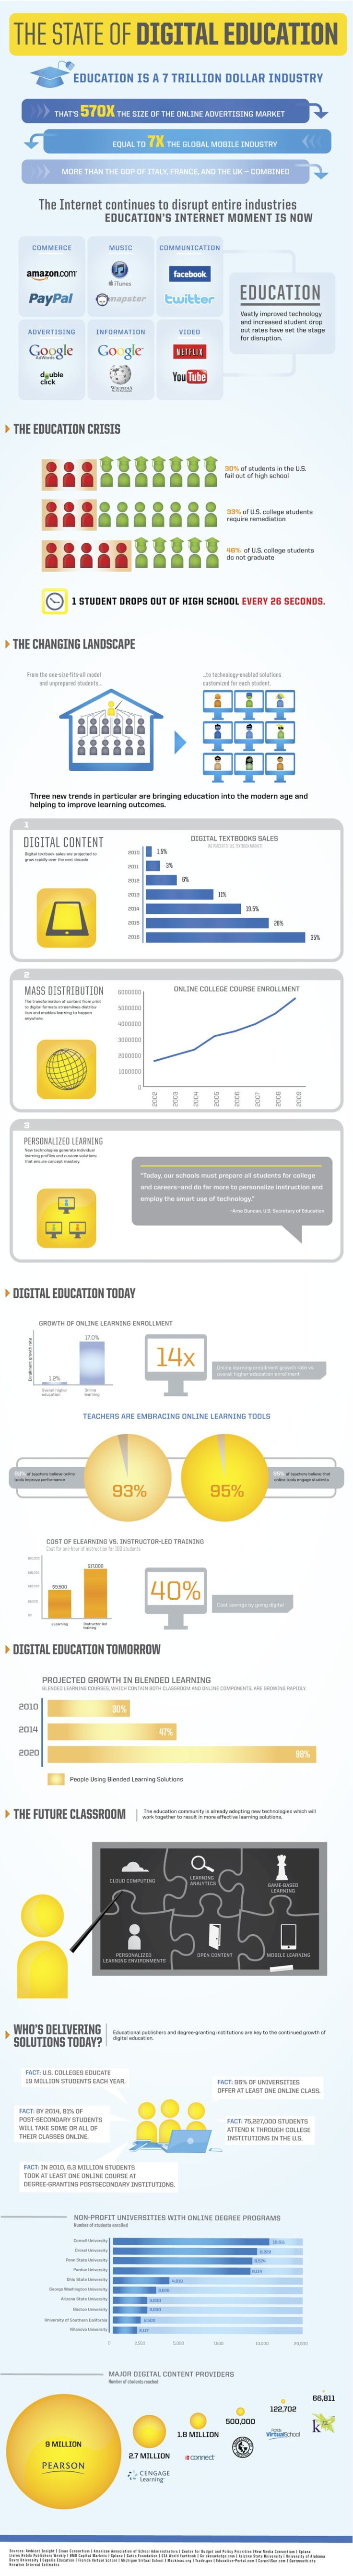 The State of Digital Education Infographic #elearning #edtech #edtechchat: Elearn Infographic, Digital Education, Website, Web Site, Edtech Education, Education Technology, Education Infographic, Internet Site, U.S. States